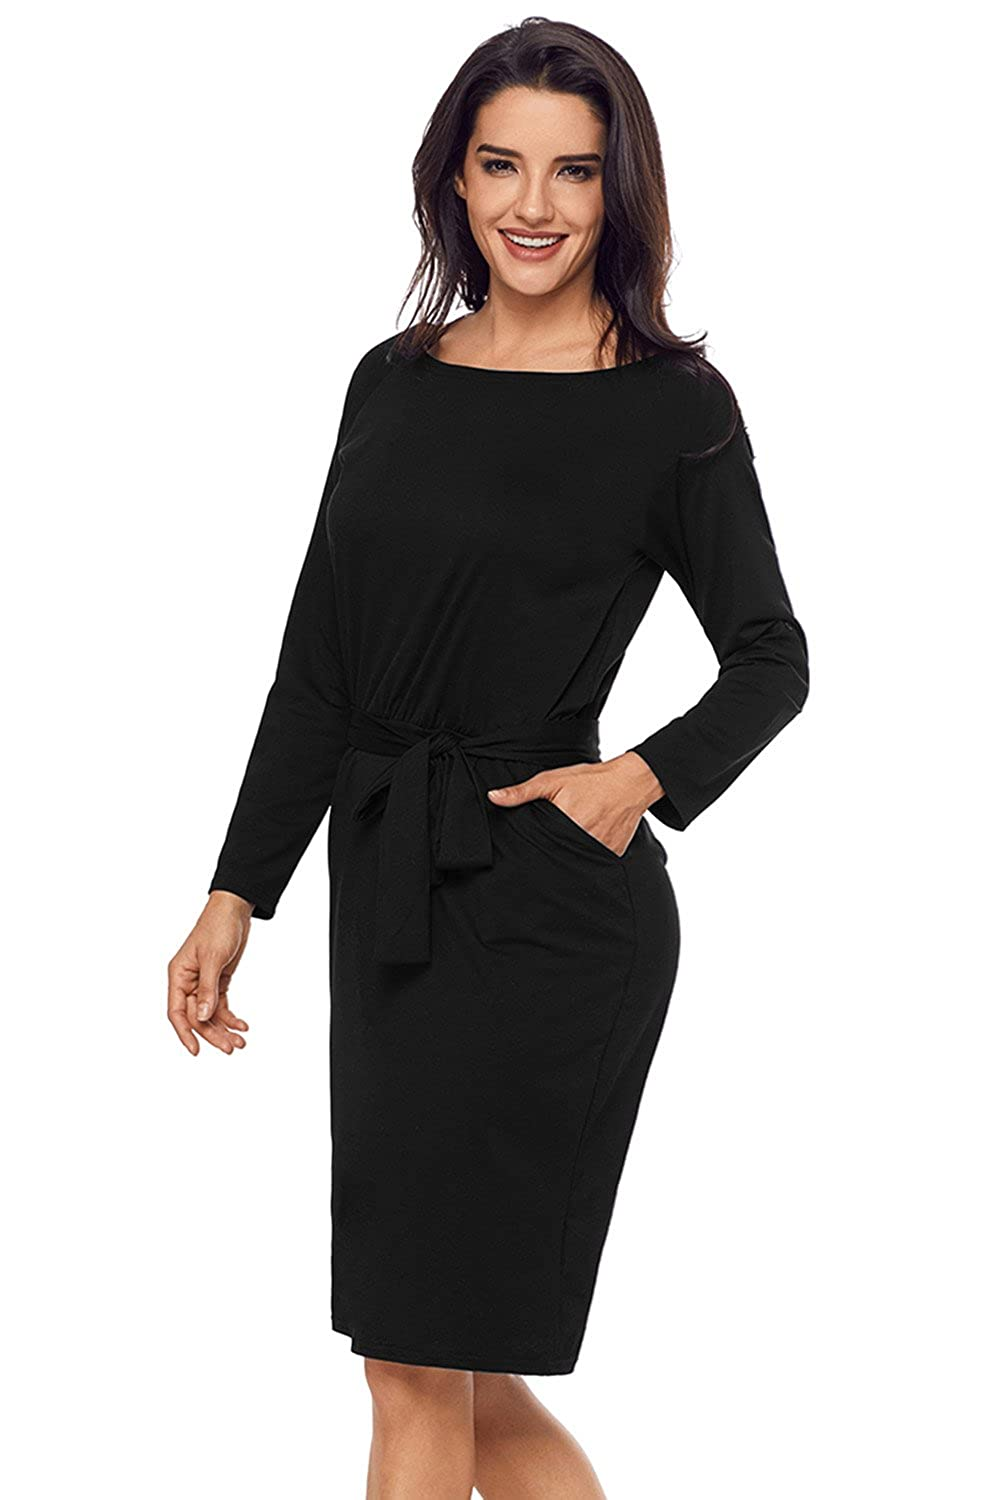 Arctic Cubic Long Sleeve Roll Up Sleeve Tie Waist Belt Pocket Side Midi Bodycon Dress at Amazon Womens Clothing store: